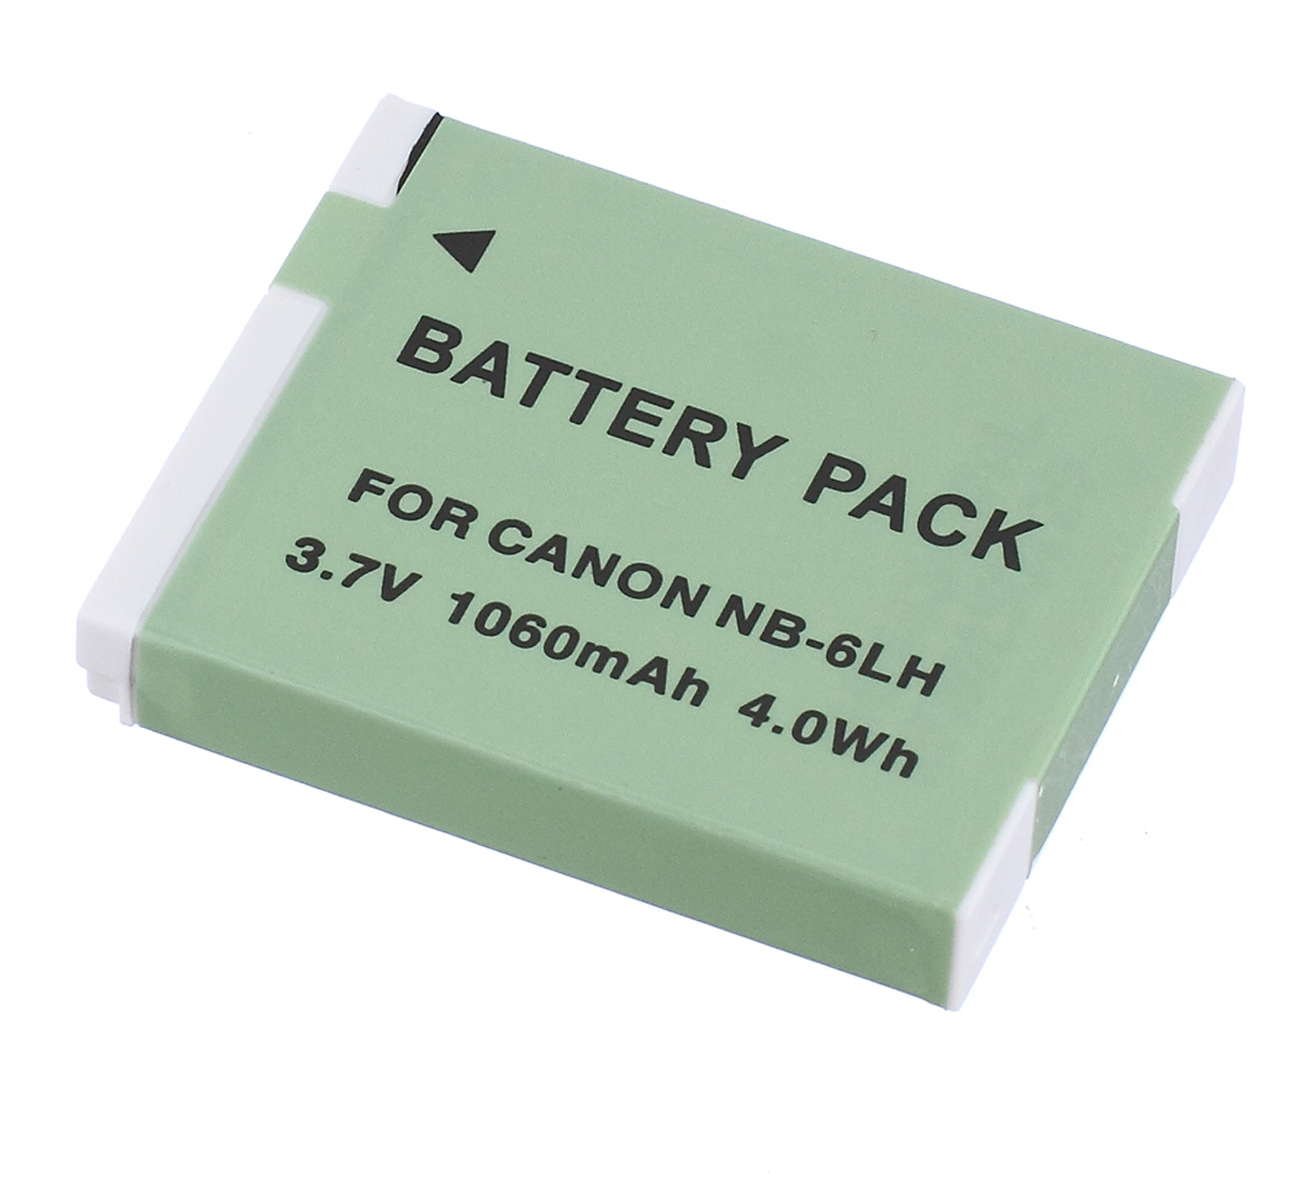 Battery Pack for <font><b>Canon</b></font> PowerShot SX500IS, SX510HS, SX520HS, SX530HS, <font><b>SX540HS</b></font>, SX600HS, SX610HS, SX700HS, SX710HS Digital Camera image